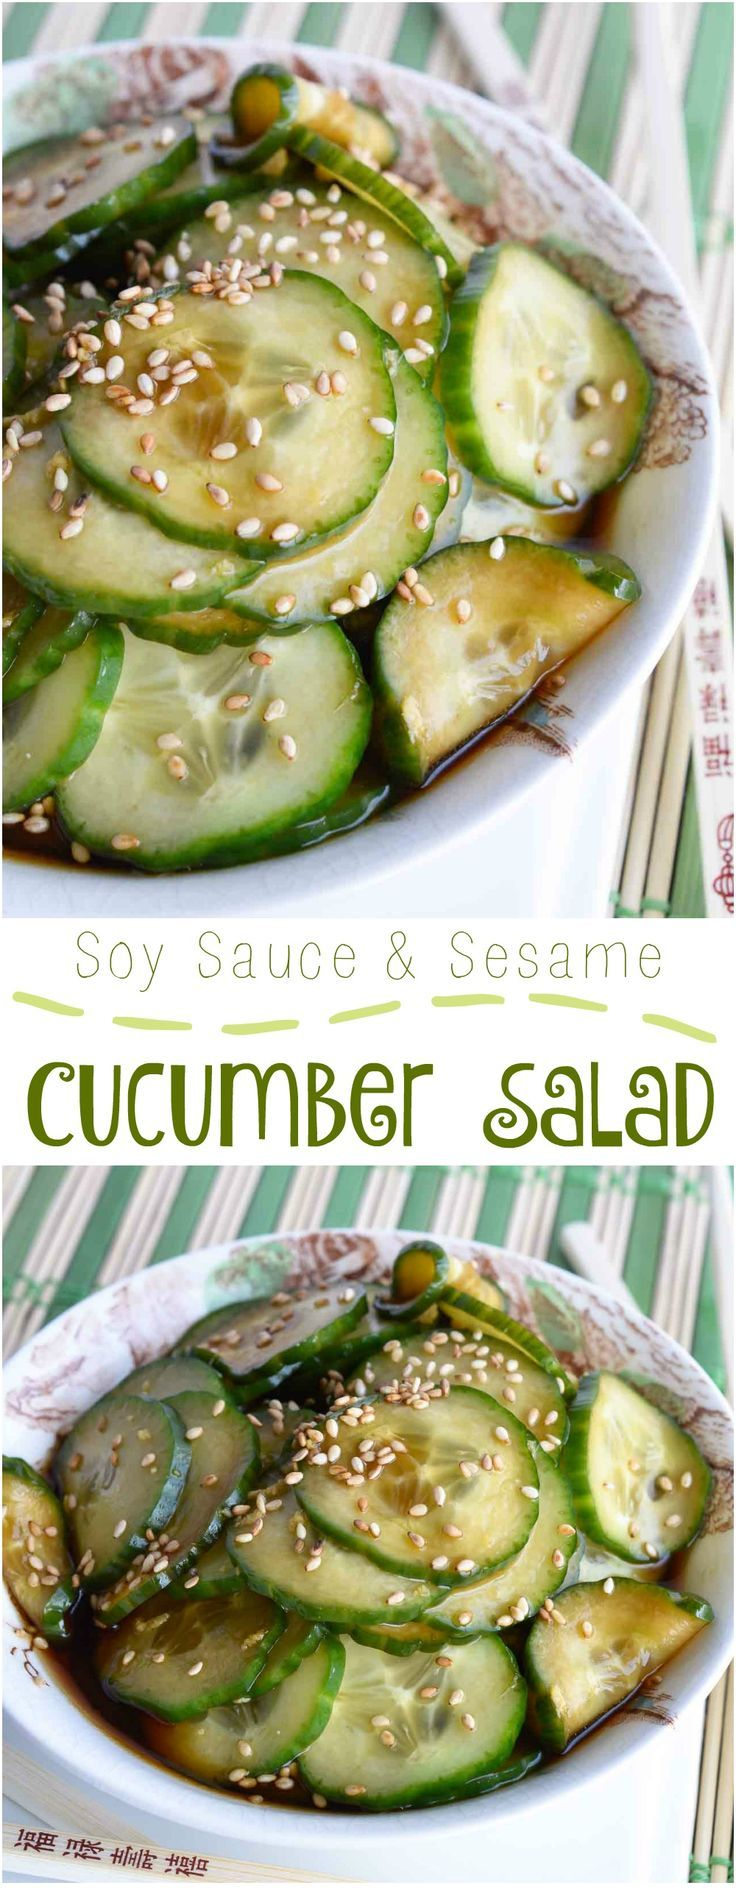 This Cucumber Salad Recipe is a quick, easy side dish that is perfect for summer…